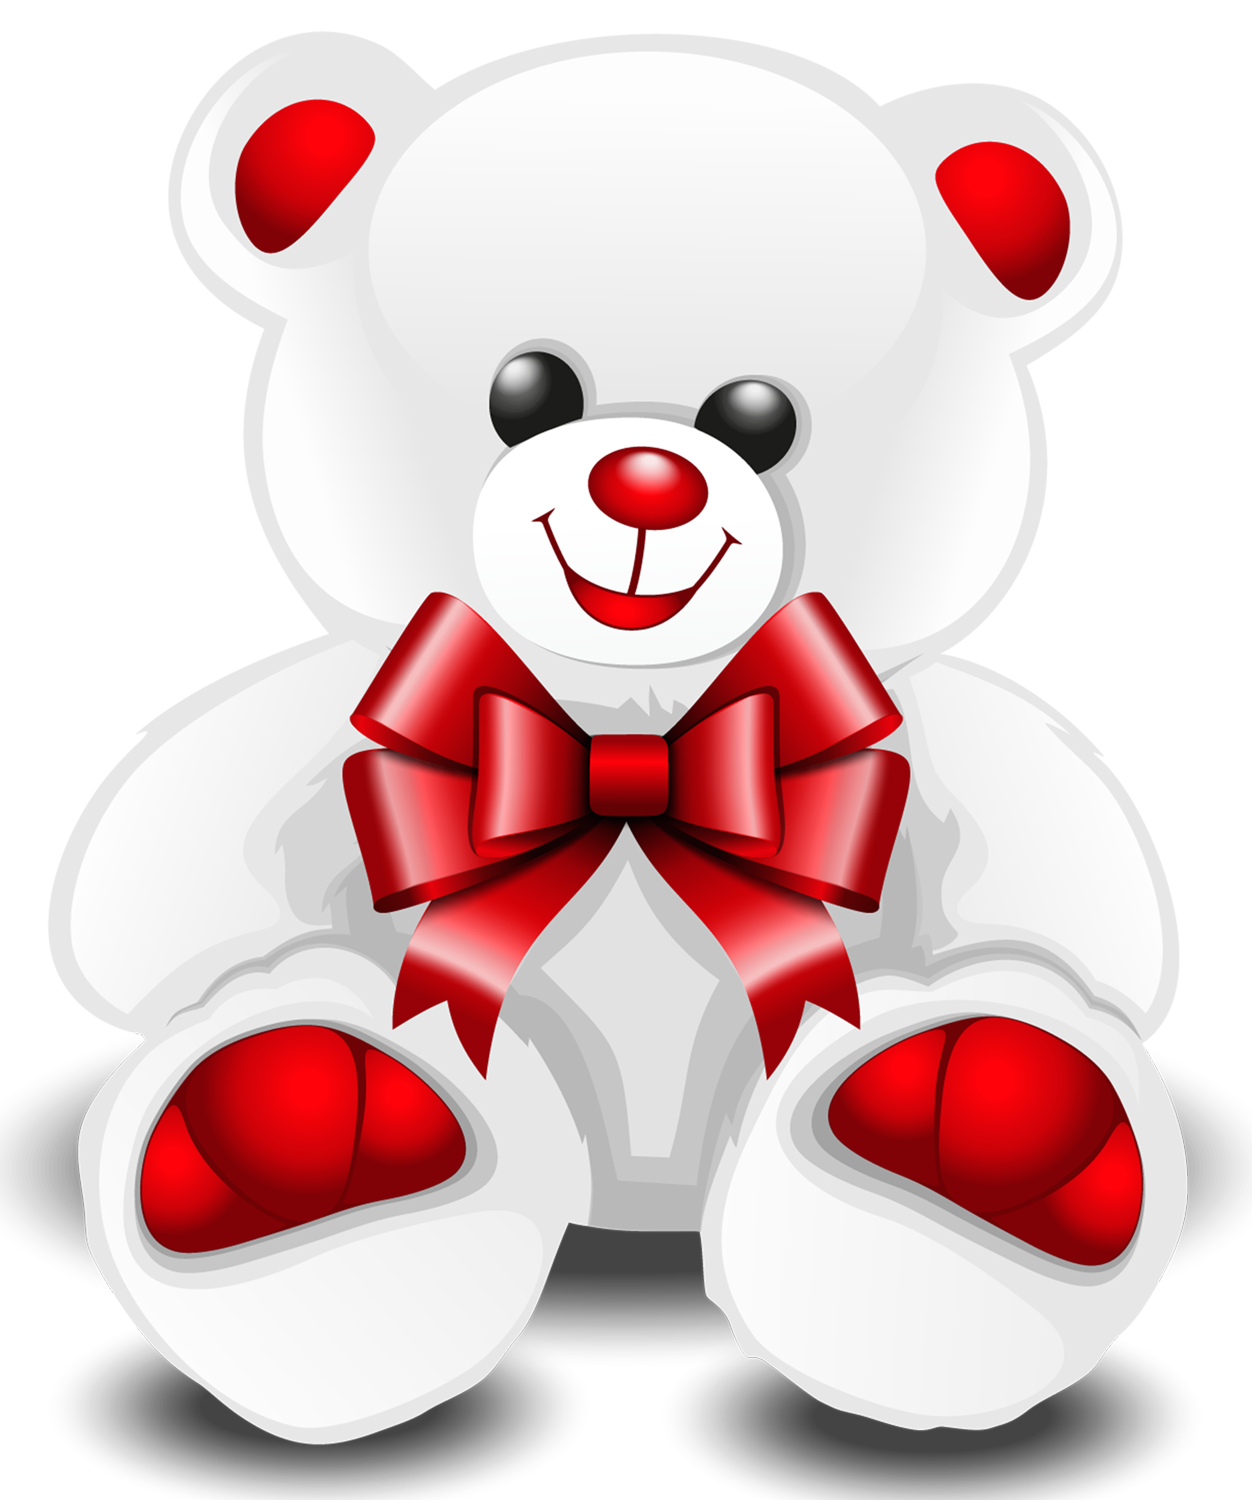 Bear clipart symbol. White teddy png picture